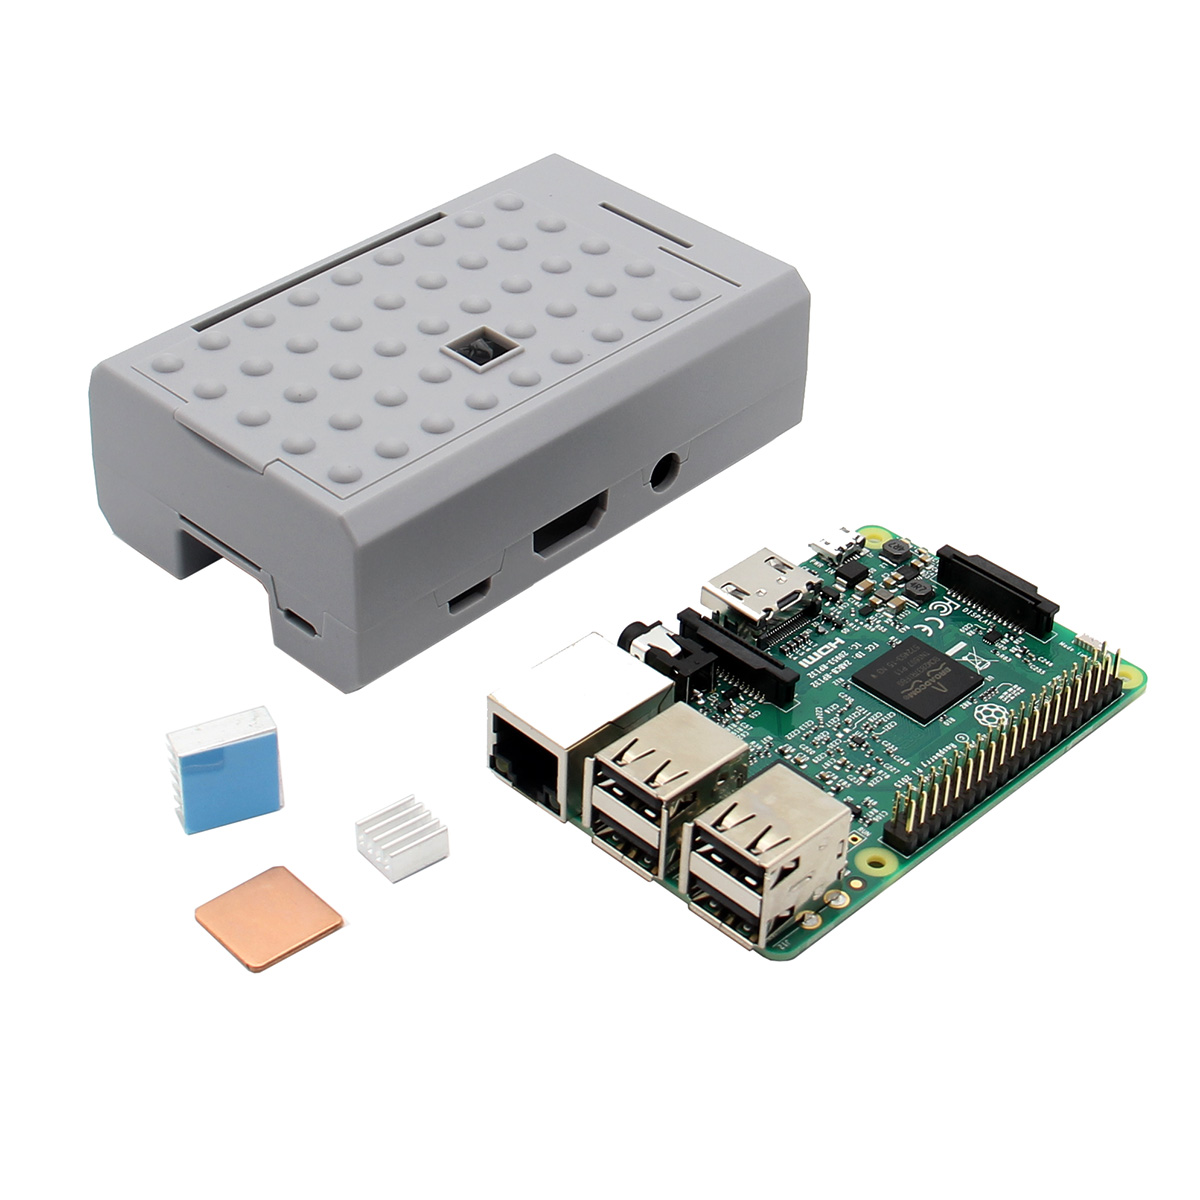 3 In 1 Raspberry Pi 3 Model B Board + Grey ABS Case She